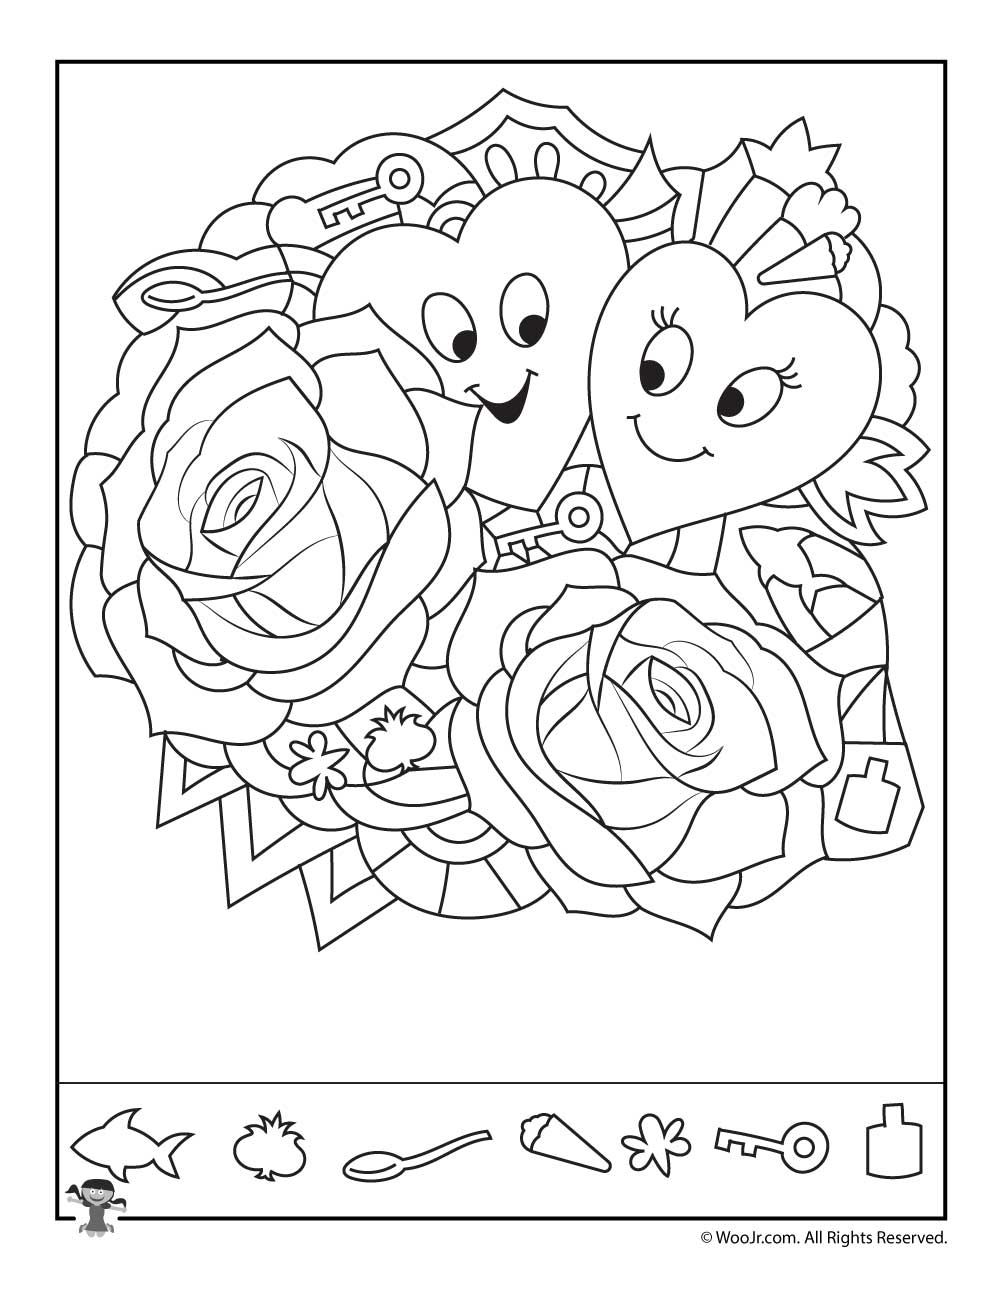 hearts and roses find the item puzzle woo jr kids activities. Black Bedroom Furniture Sets. Home Design Ideas